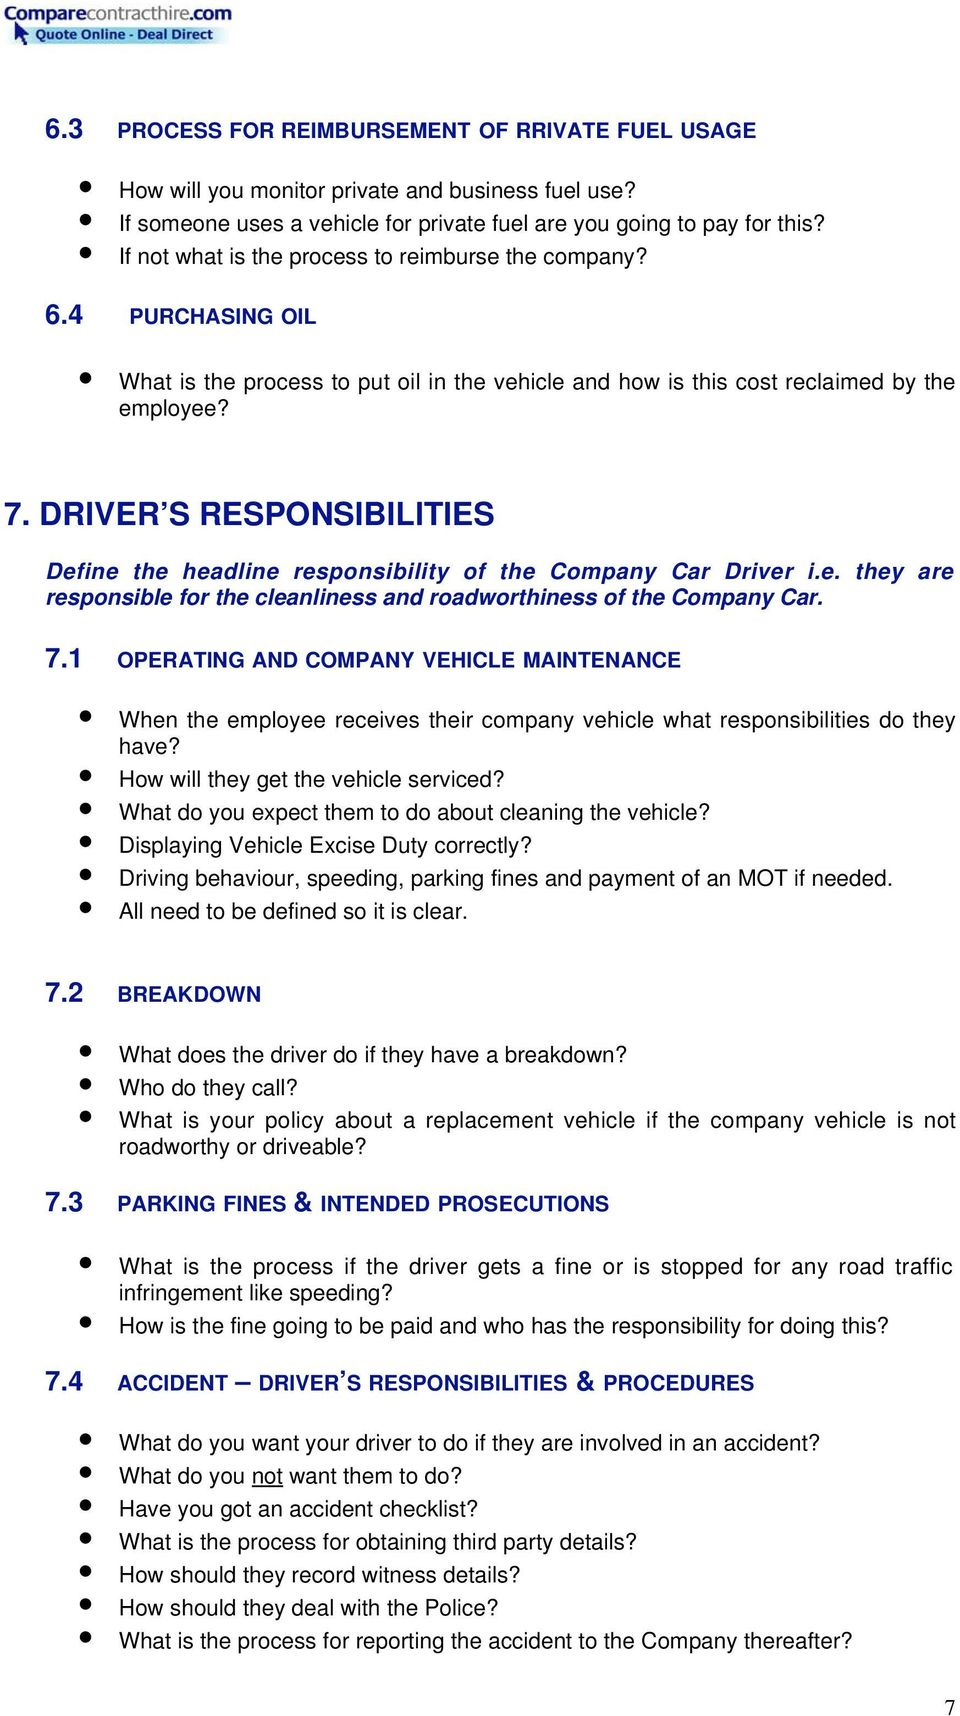 DRIVER S RESPONSIBILITIES Define the headline responsibility of the Company Car Driver i.e. they are responsible for the cleanliness and roadworthiness of the Company Car. 7.